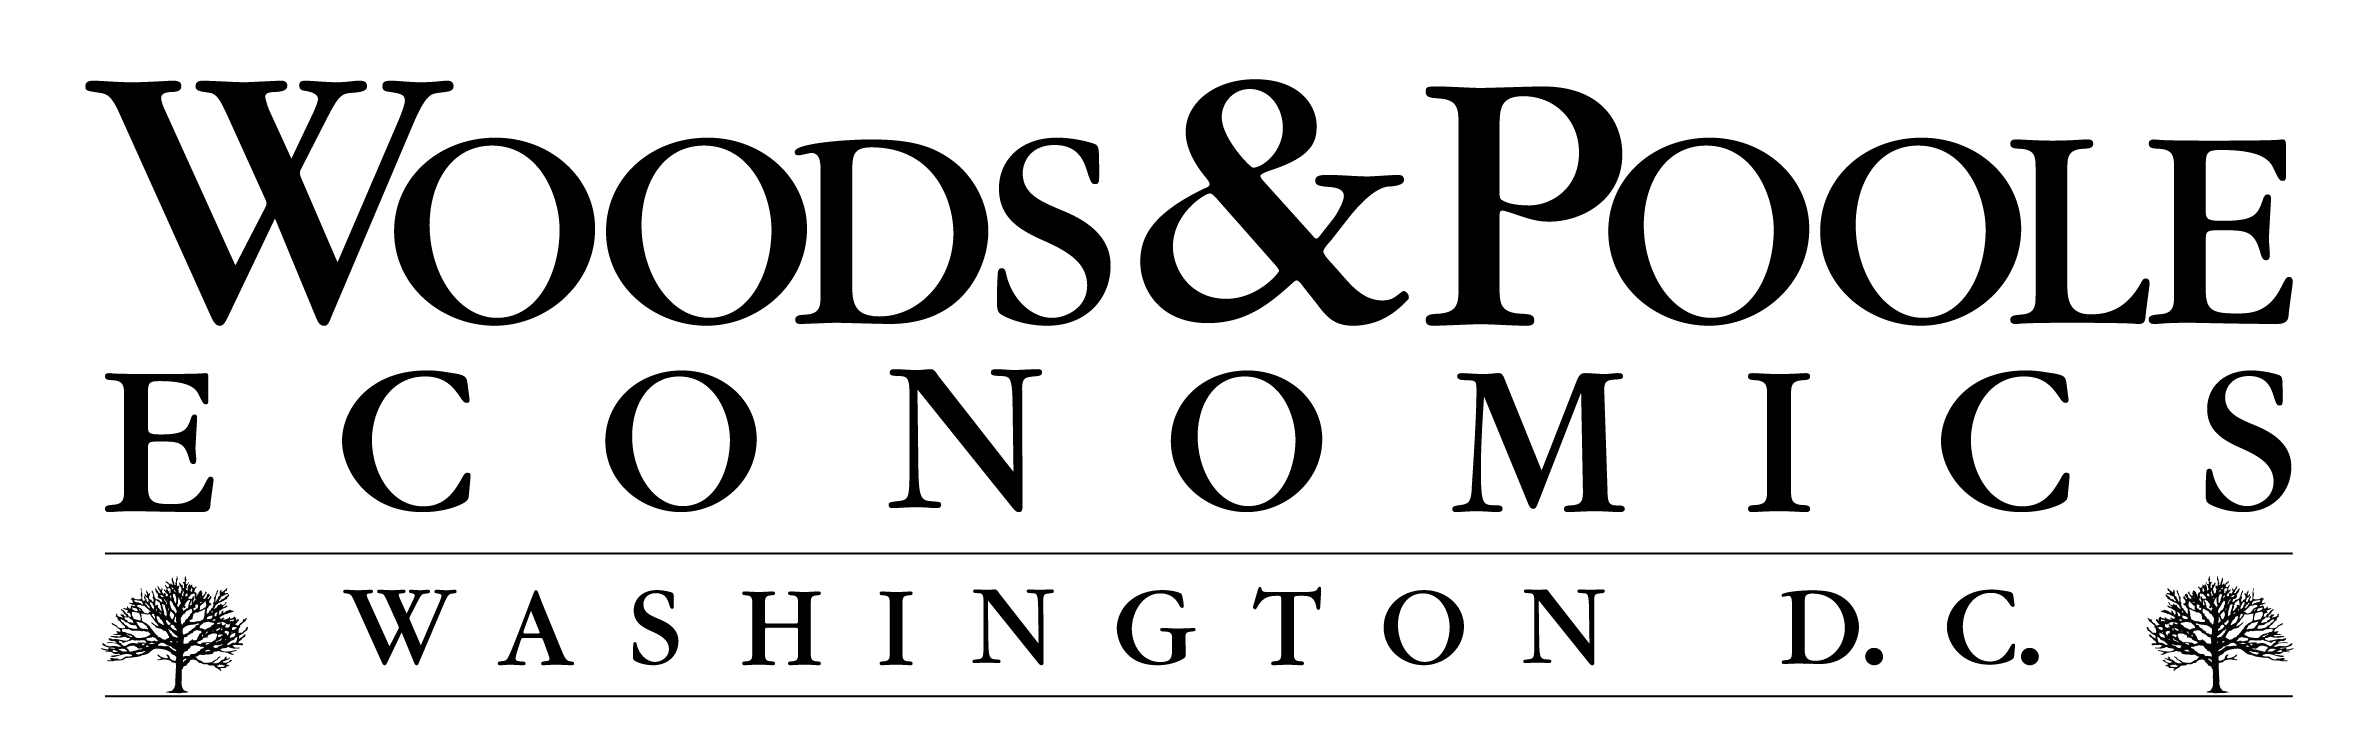 BARDSTOWN KY (FIPS 12680) | Woods & Poole Economics, Inc